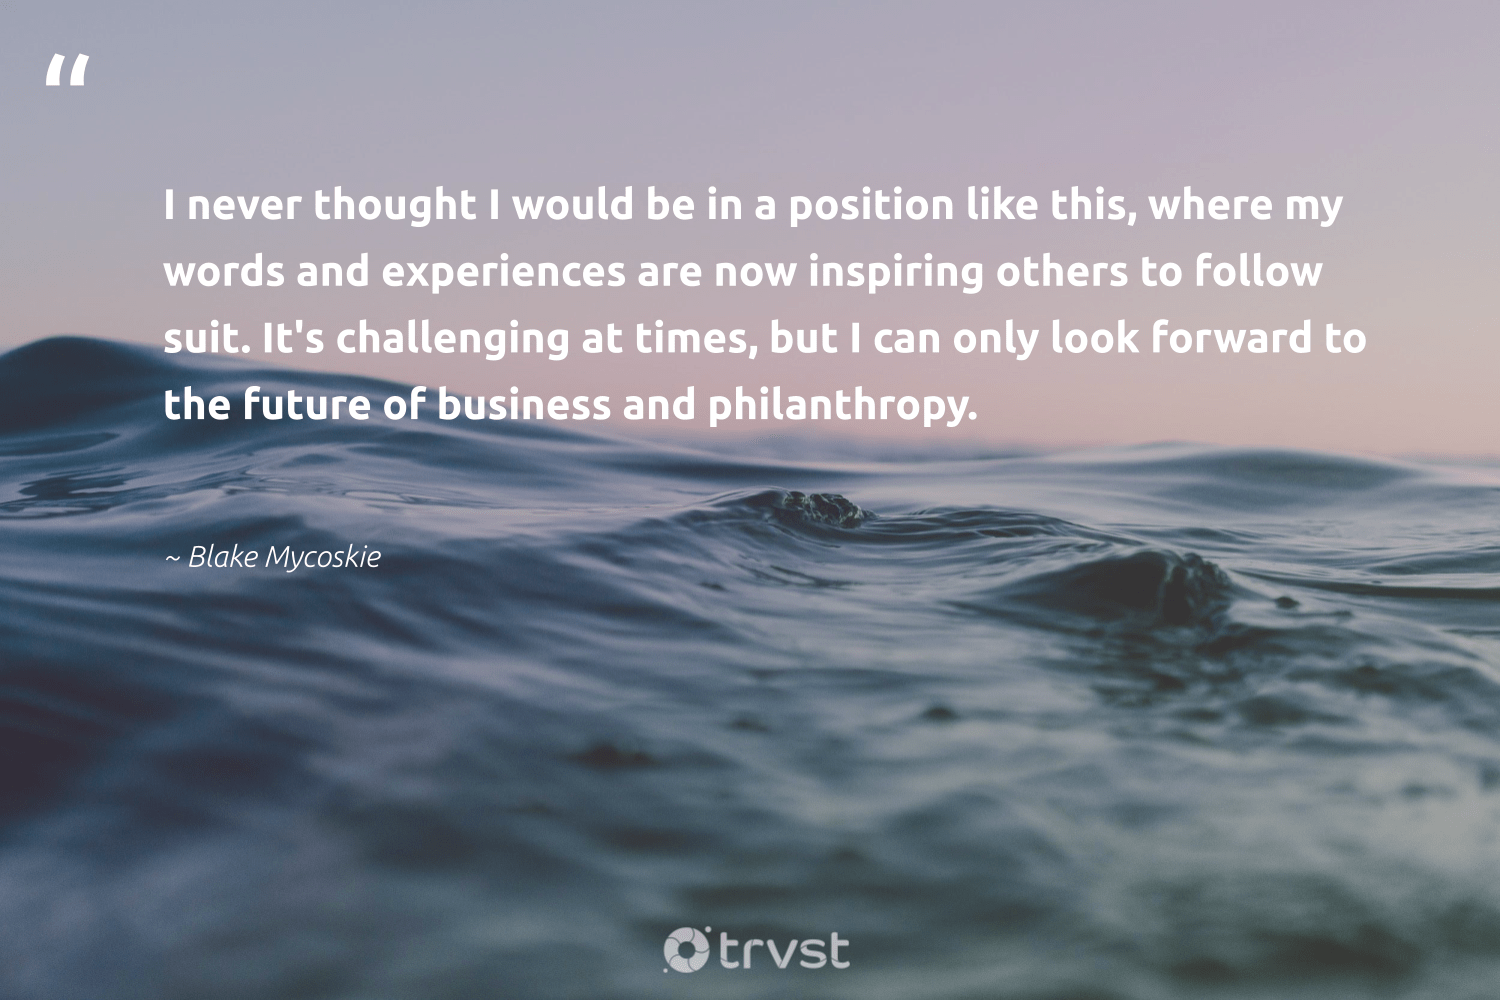 """I never thought I would be in a position like this, where my words and experiences are now inspiring others to follow suit. It's challenging at times, but I can only look forward to the future of business and philanthropy.""  - Blake Mycoskie #trvst #quotes #philanthropy #philanthropic #itscooltobekind #changemakers #dosomething #togetherwecan #giveforthefuture #thinkgreen #socialimpact #impact"